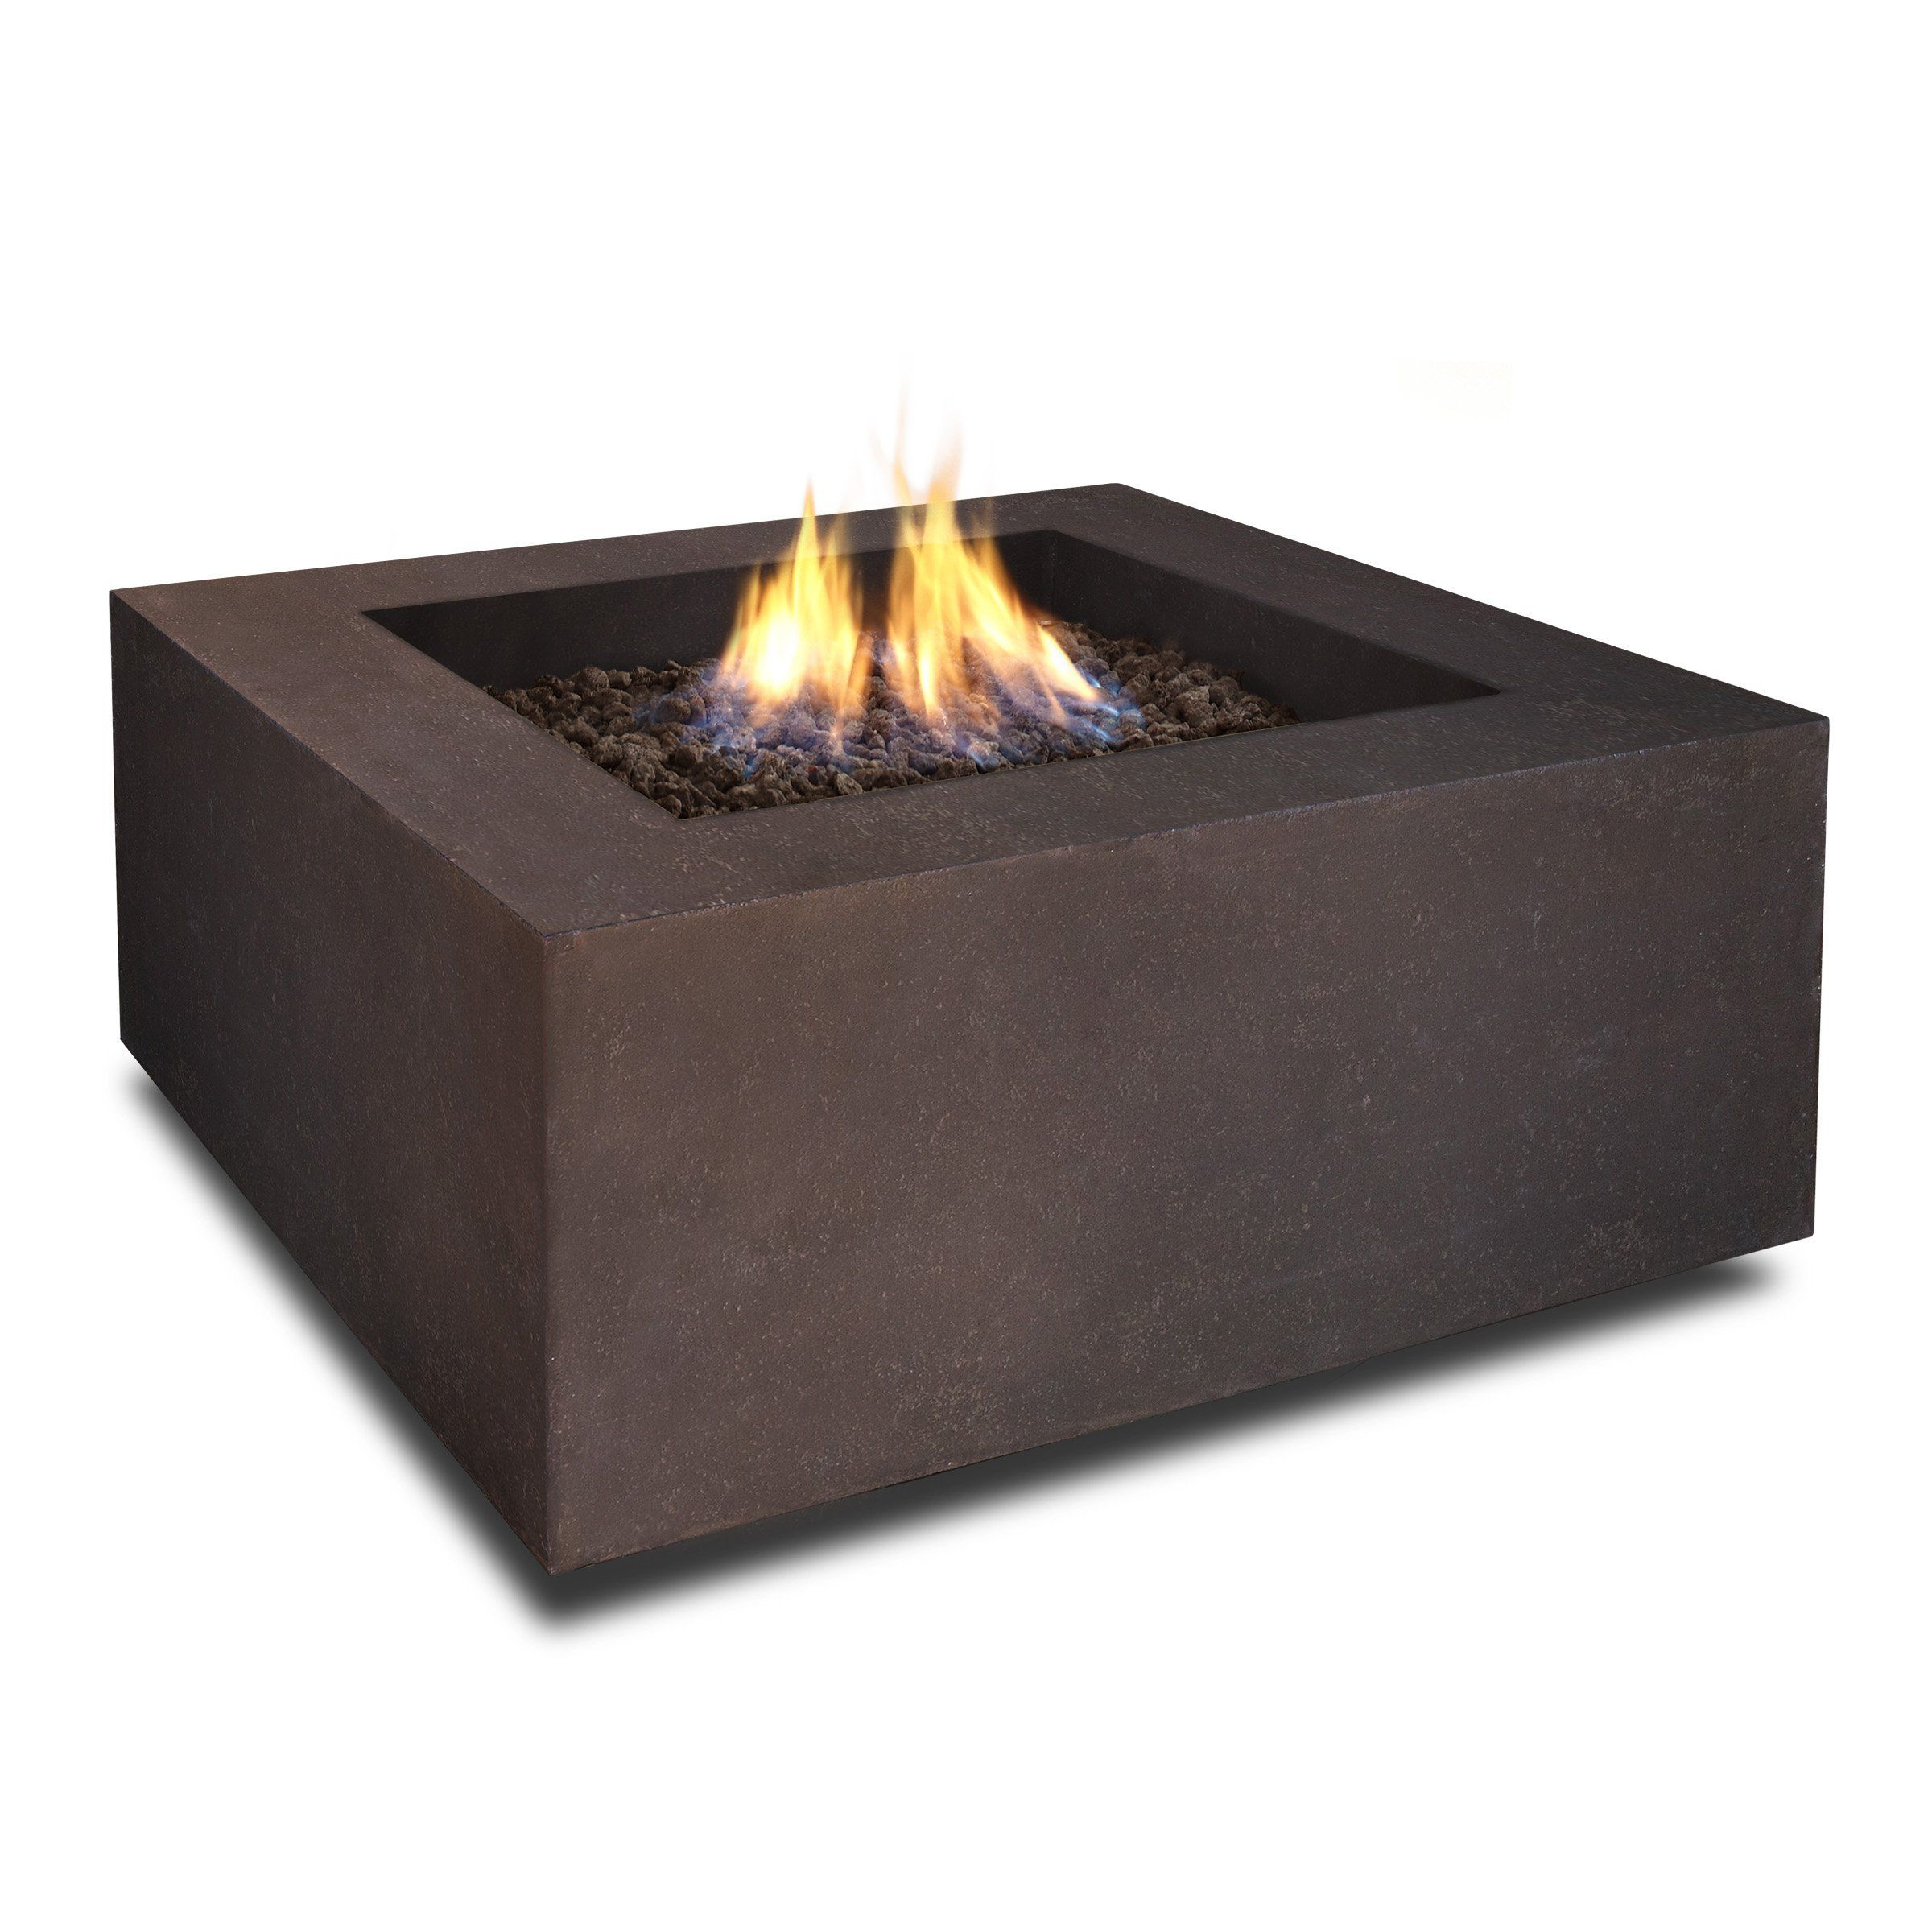 Real Flame Baltic Square Gas Fire Table Fire Table Gas Fire Table Propane Fire Pit Table